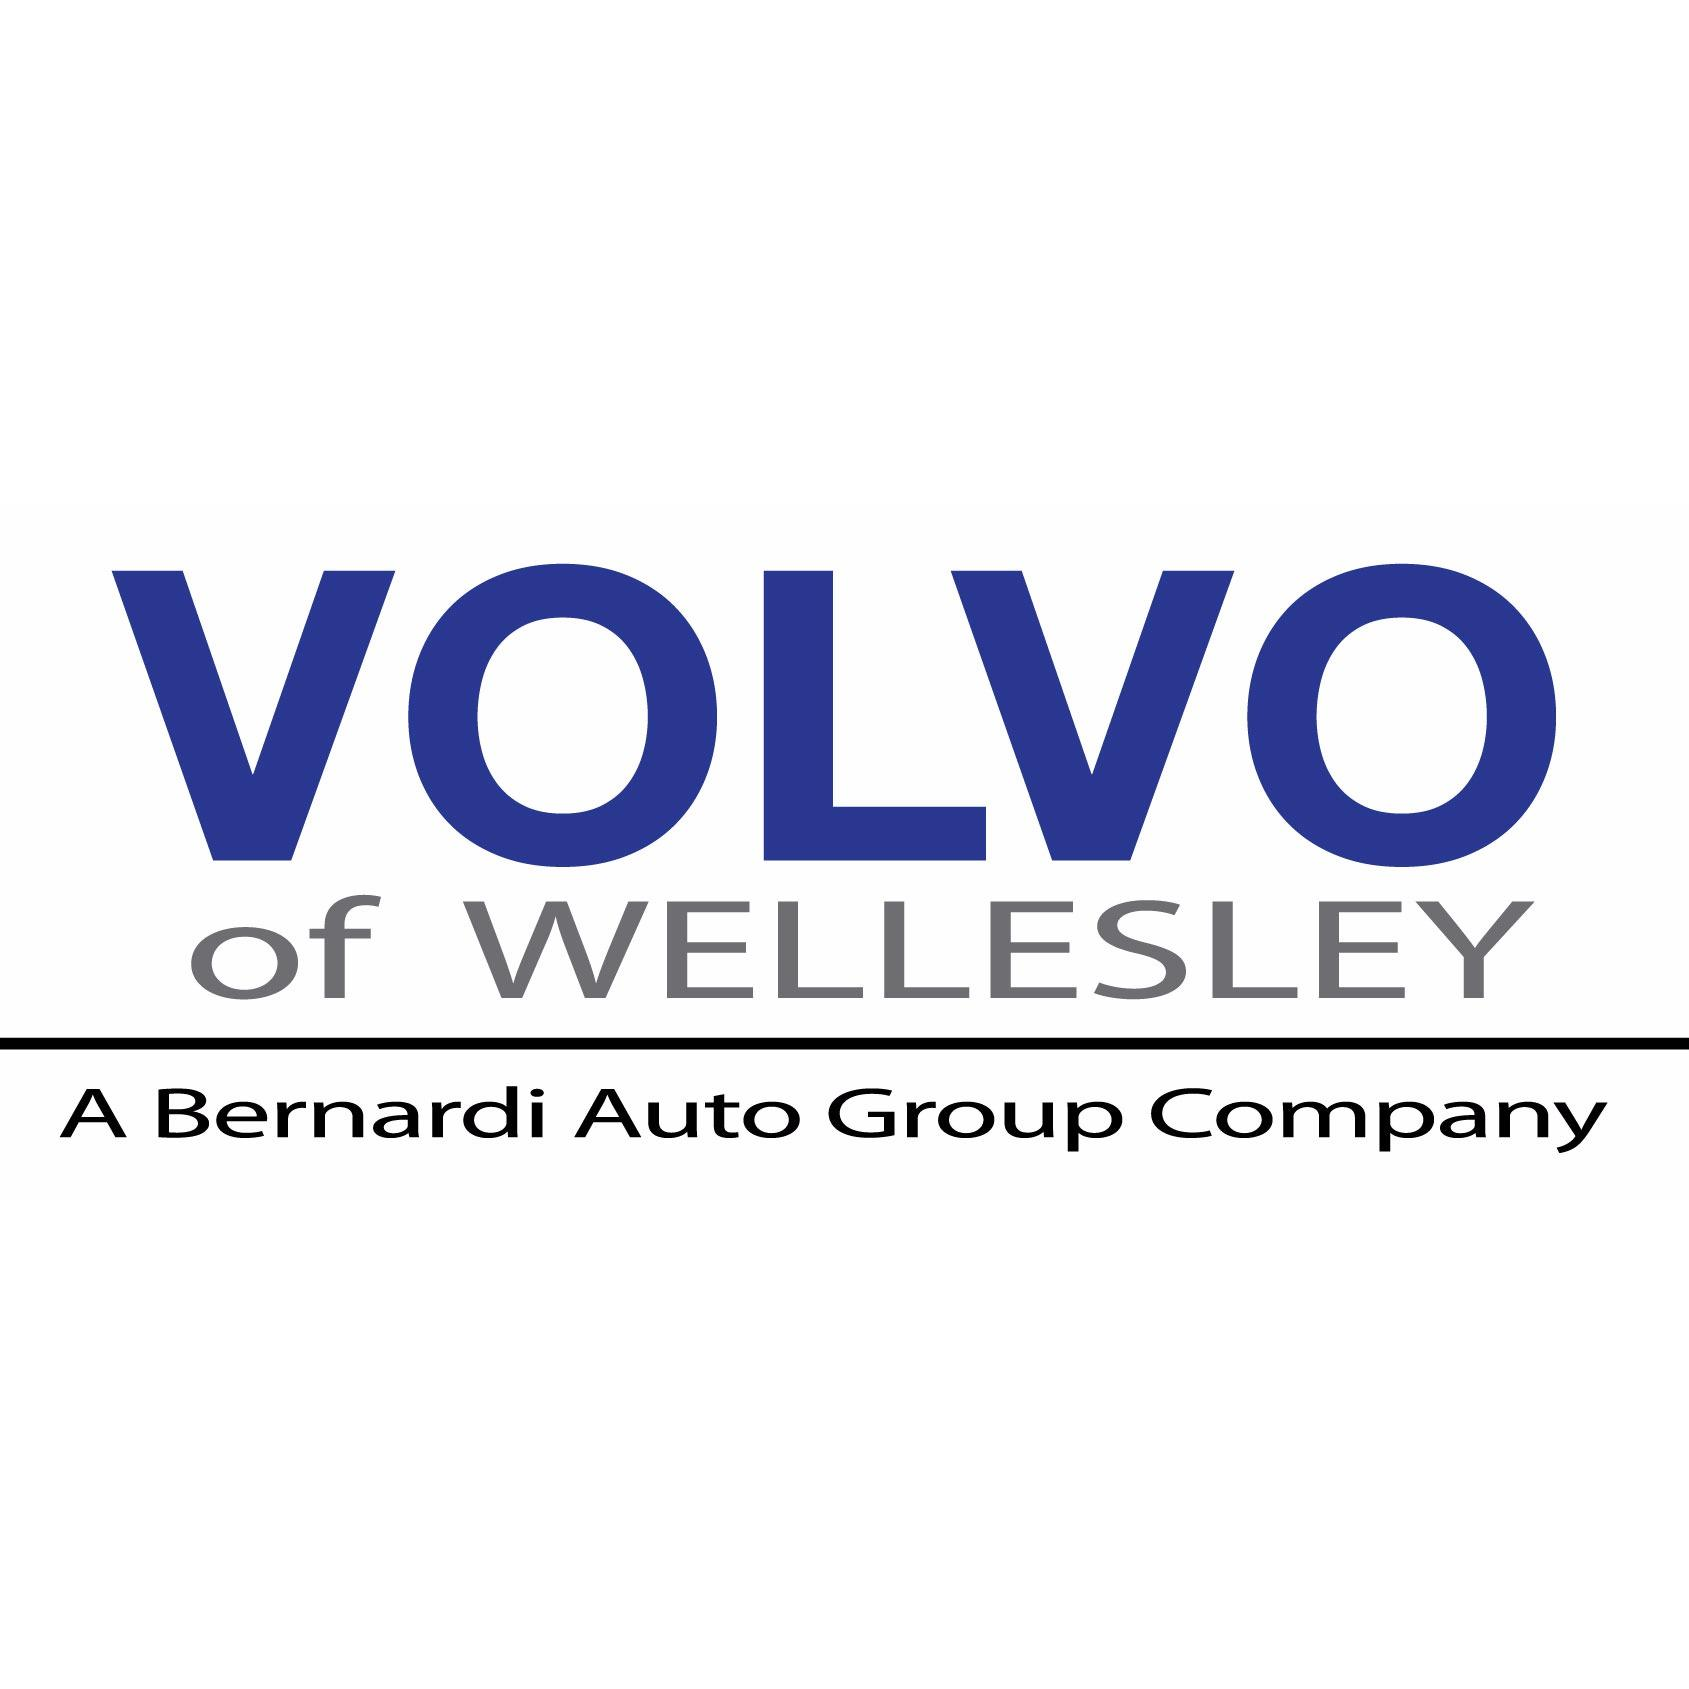 image of Volvo of Wellesley